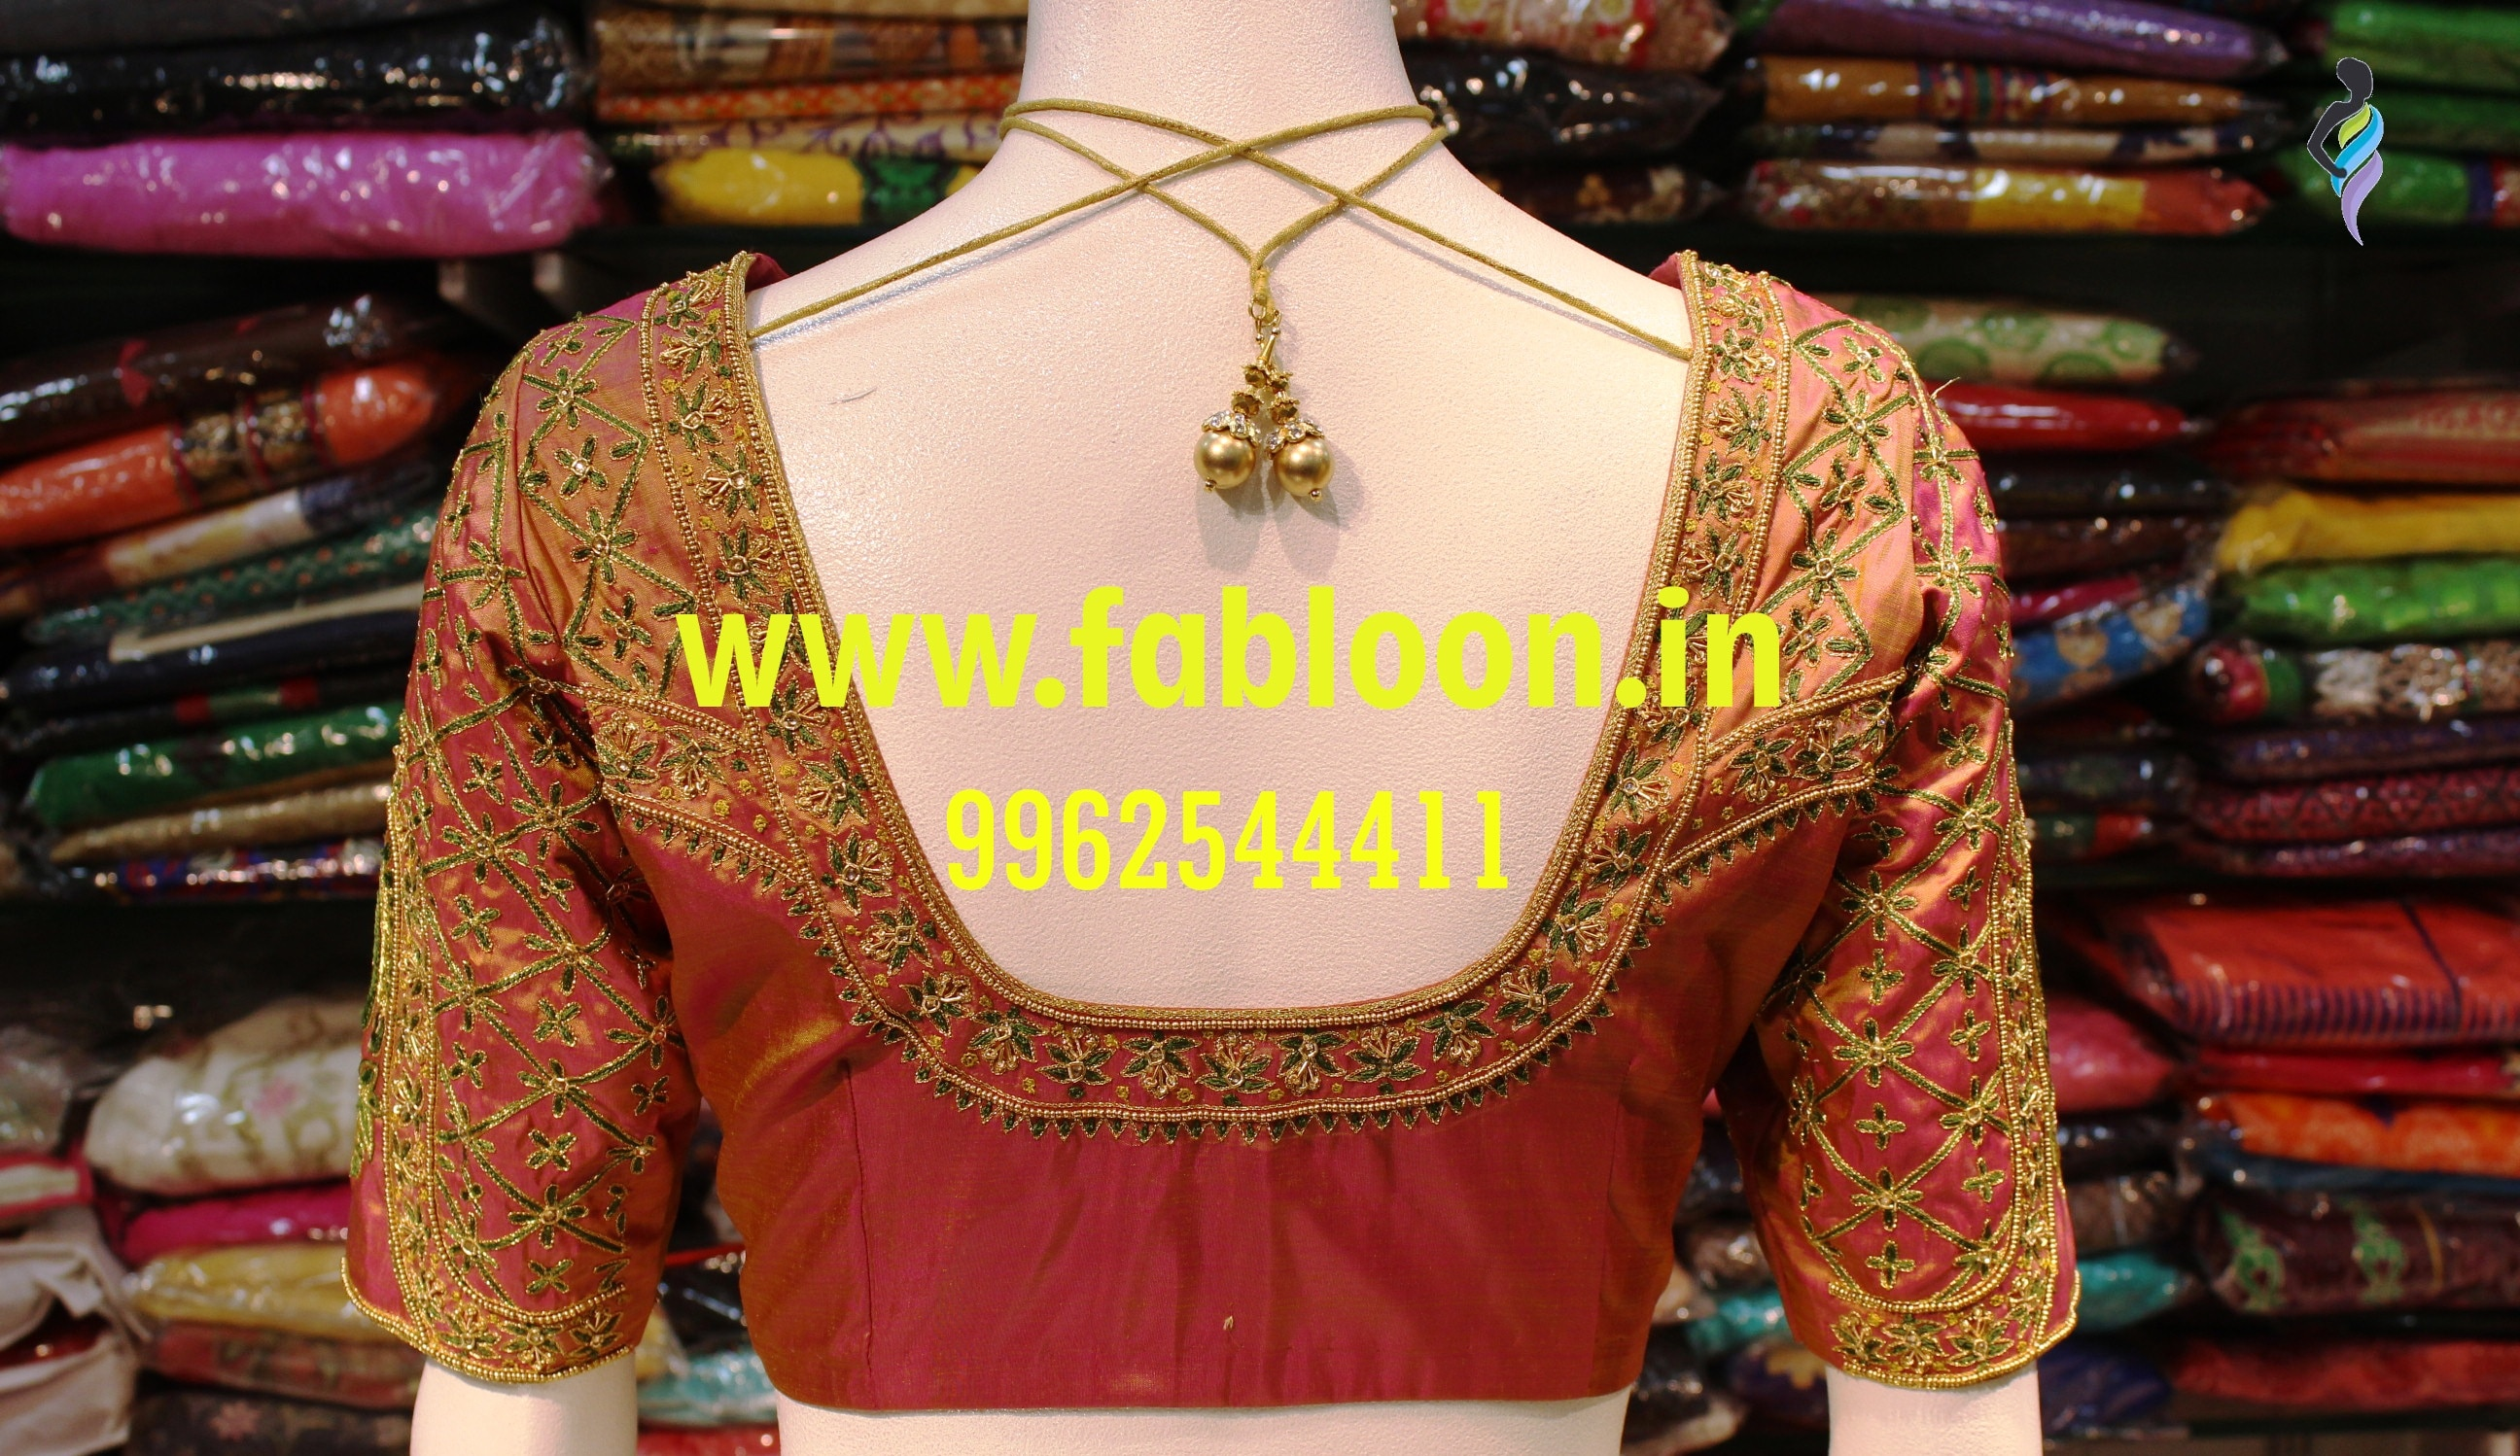 Wedding Dress Boutiques At Fabloon Embroidery Shop In Vadapalani, Mob: +91 9962544411, 044 48644411.   Womens Boutique Clothing.  Womens Boutique.  Boutique Clothing Stores.  Trendy Clothing Boutiques.  Ladies Boutique Clothing.  Check all updates for more collections.